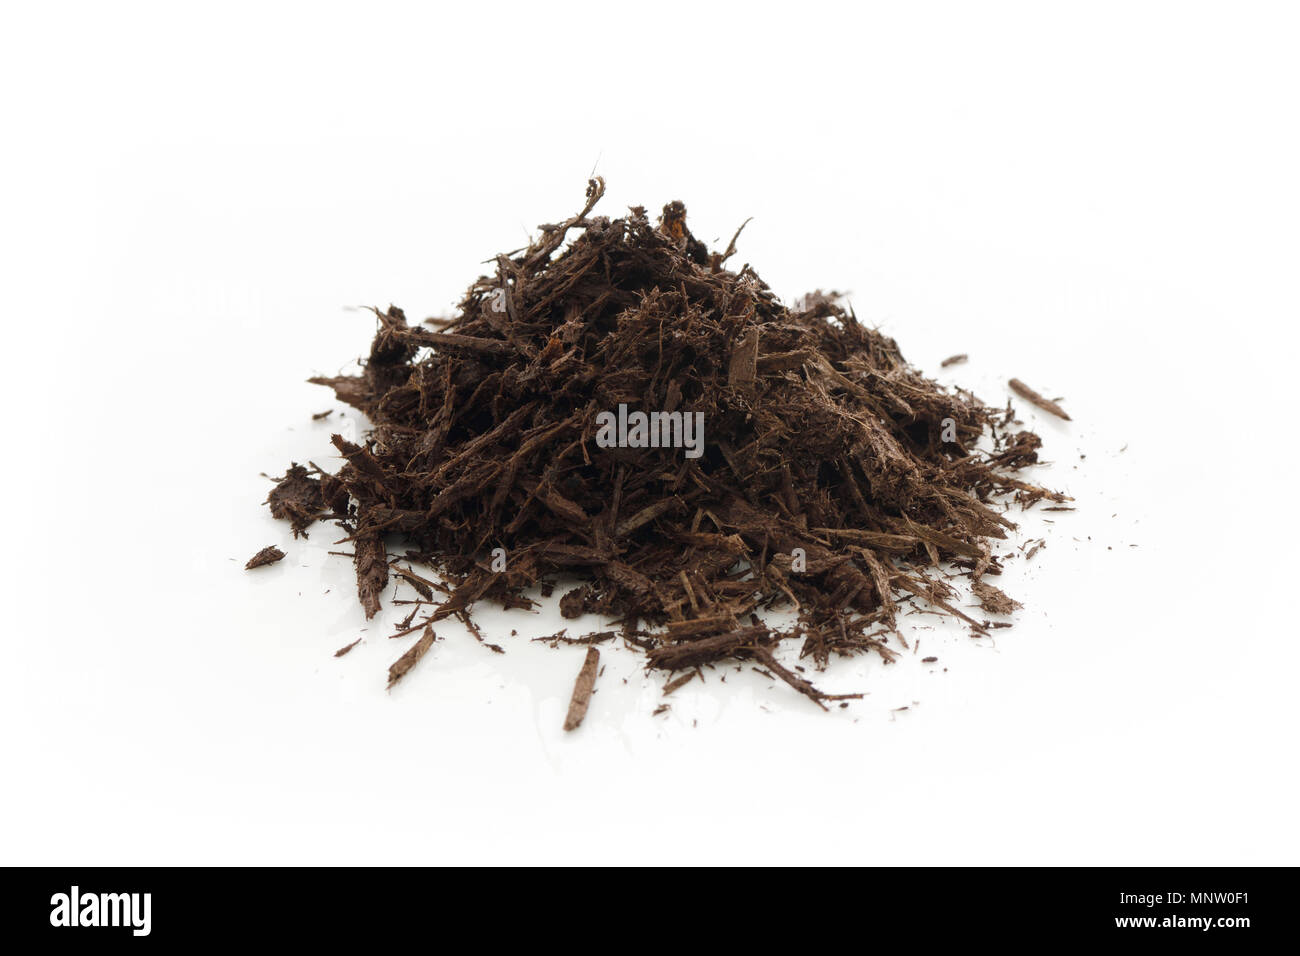 Tree bark and wood chips mulch used in horticulture and gardening. Closeup of an isolated cone pile on white studio background. - Stock Image